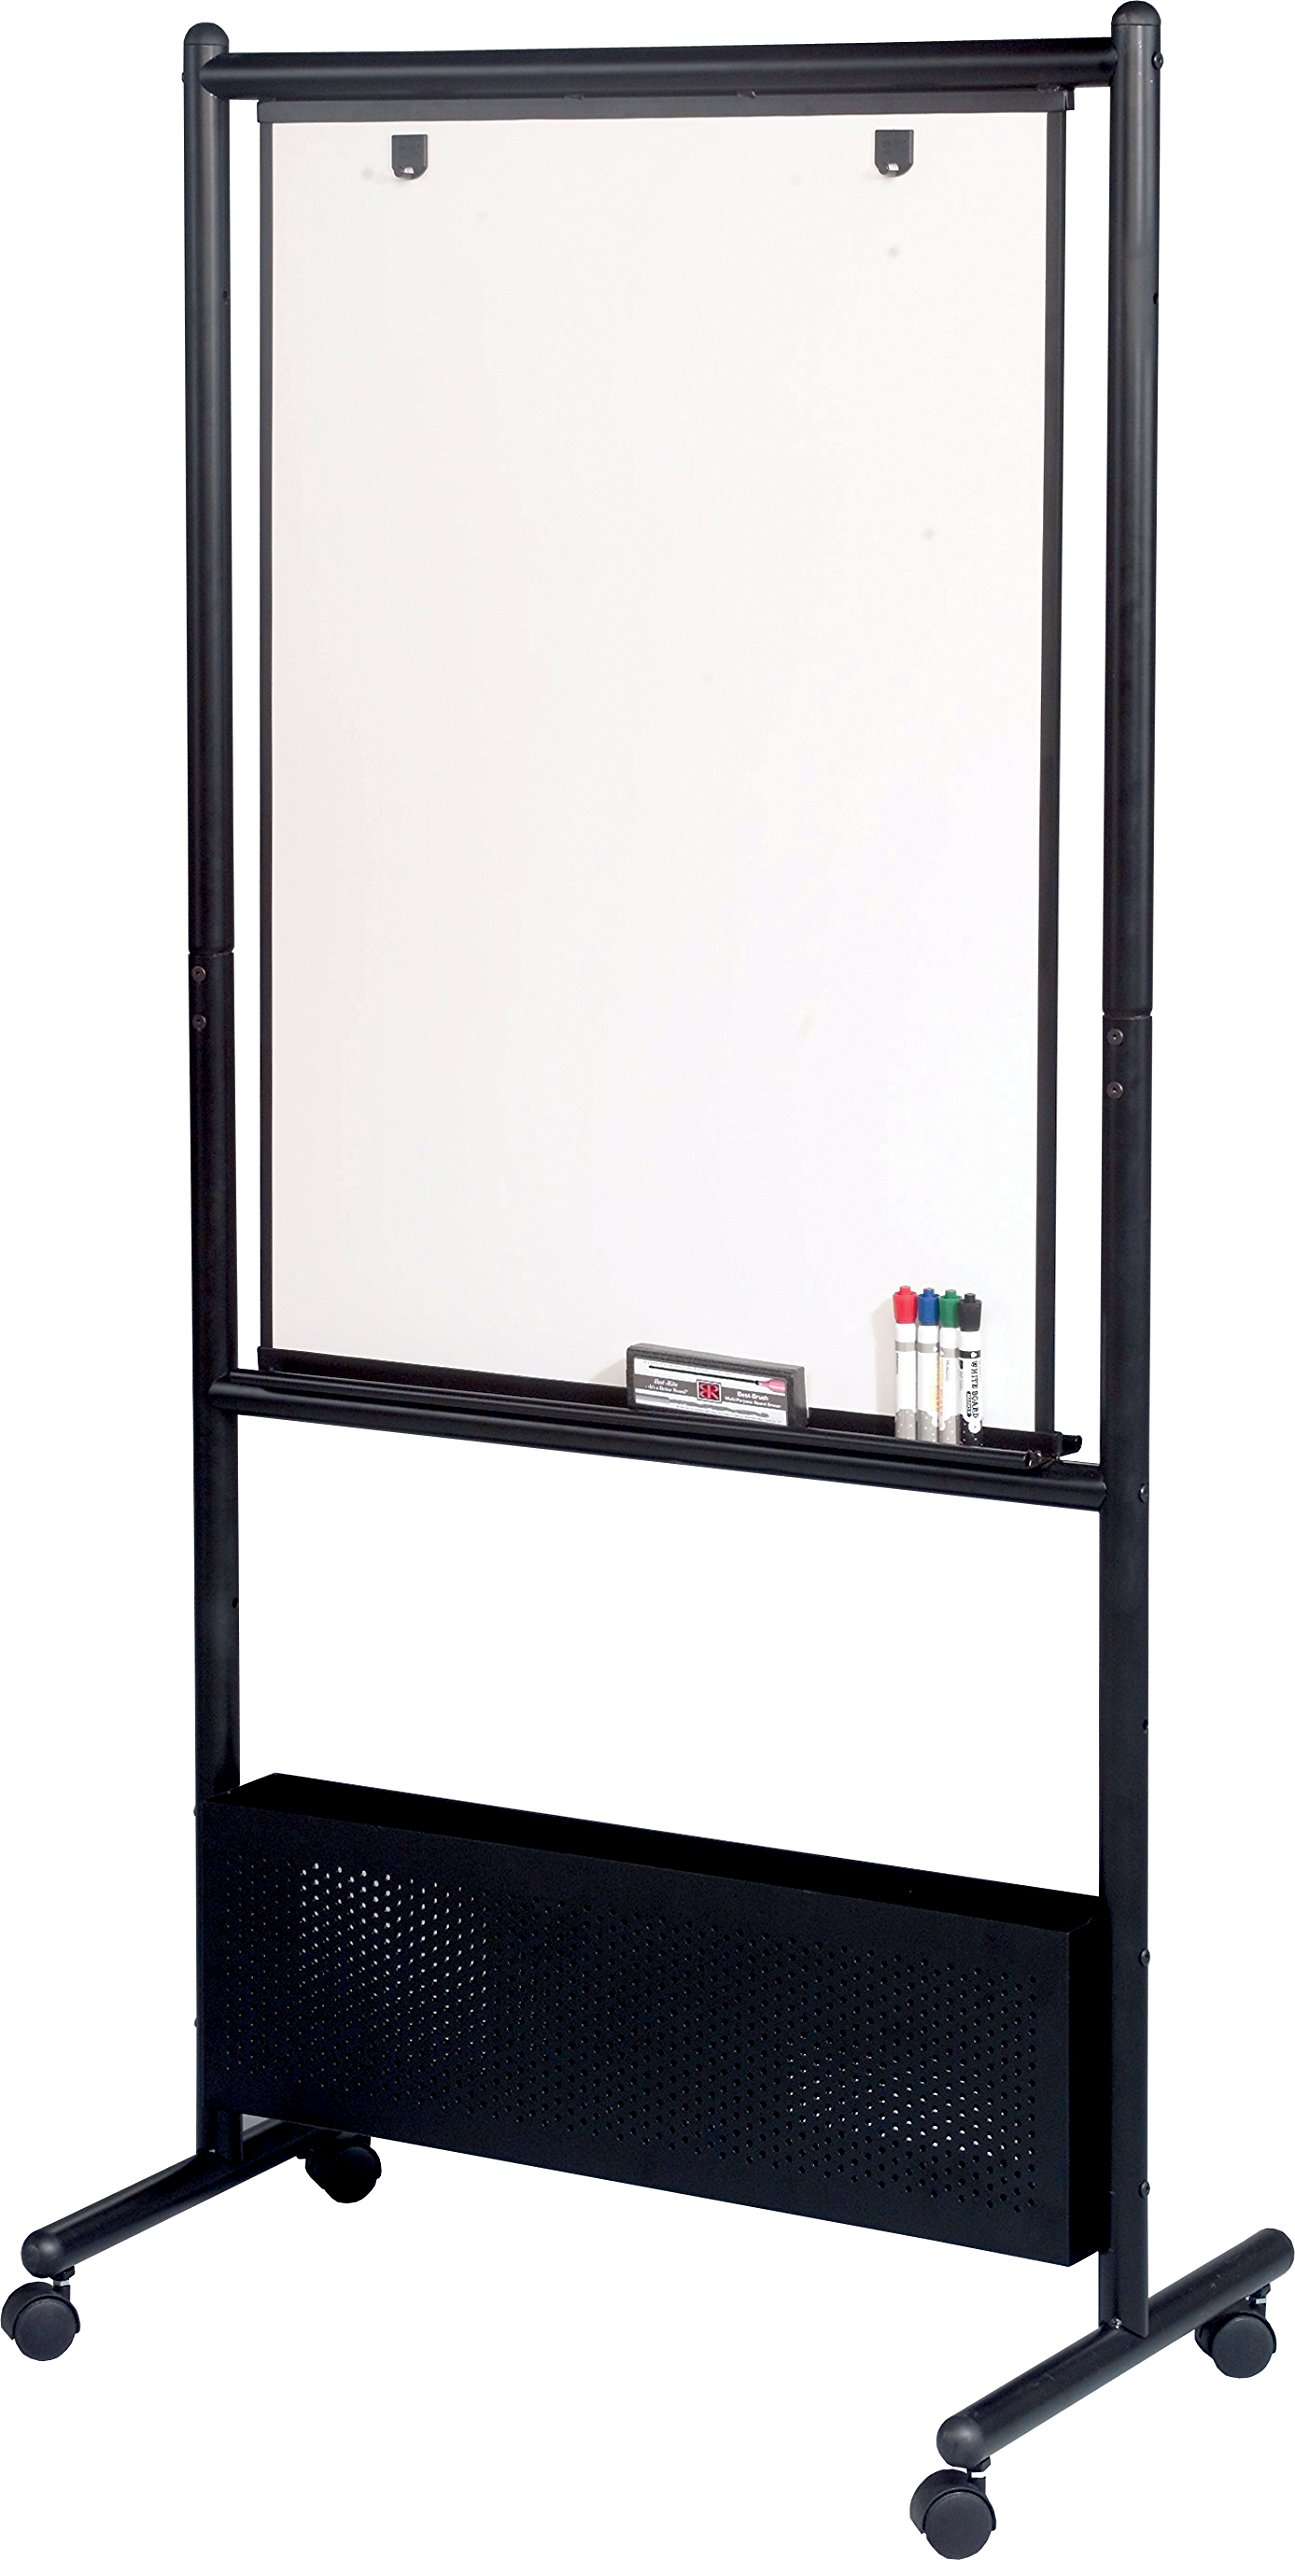 Best-Rite Mobile Nest Easel, Black Frame, Double Sided Dura-Rite HPL Whiteboard, 72''H x 34.75''W x 24''D (781) by Best-Rite